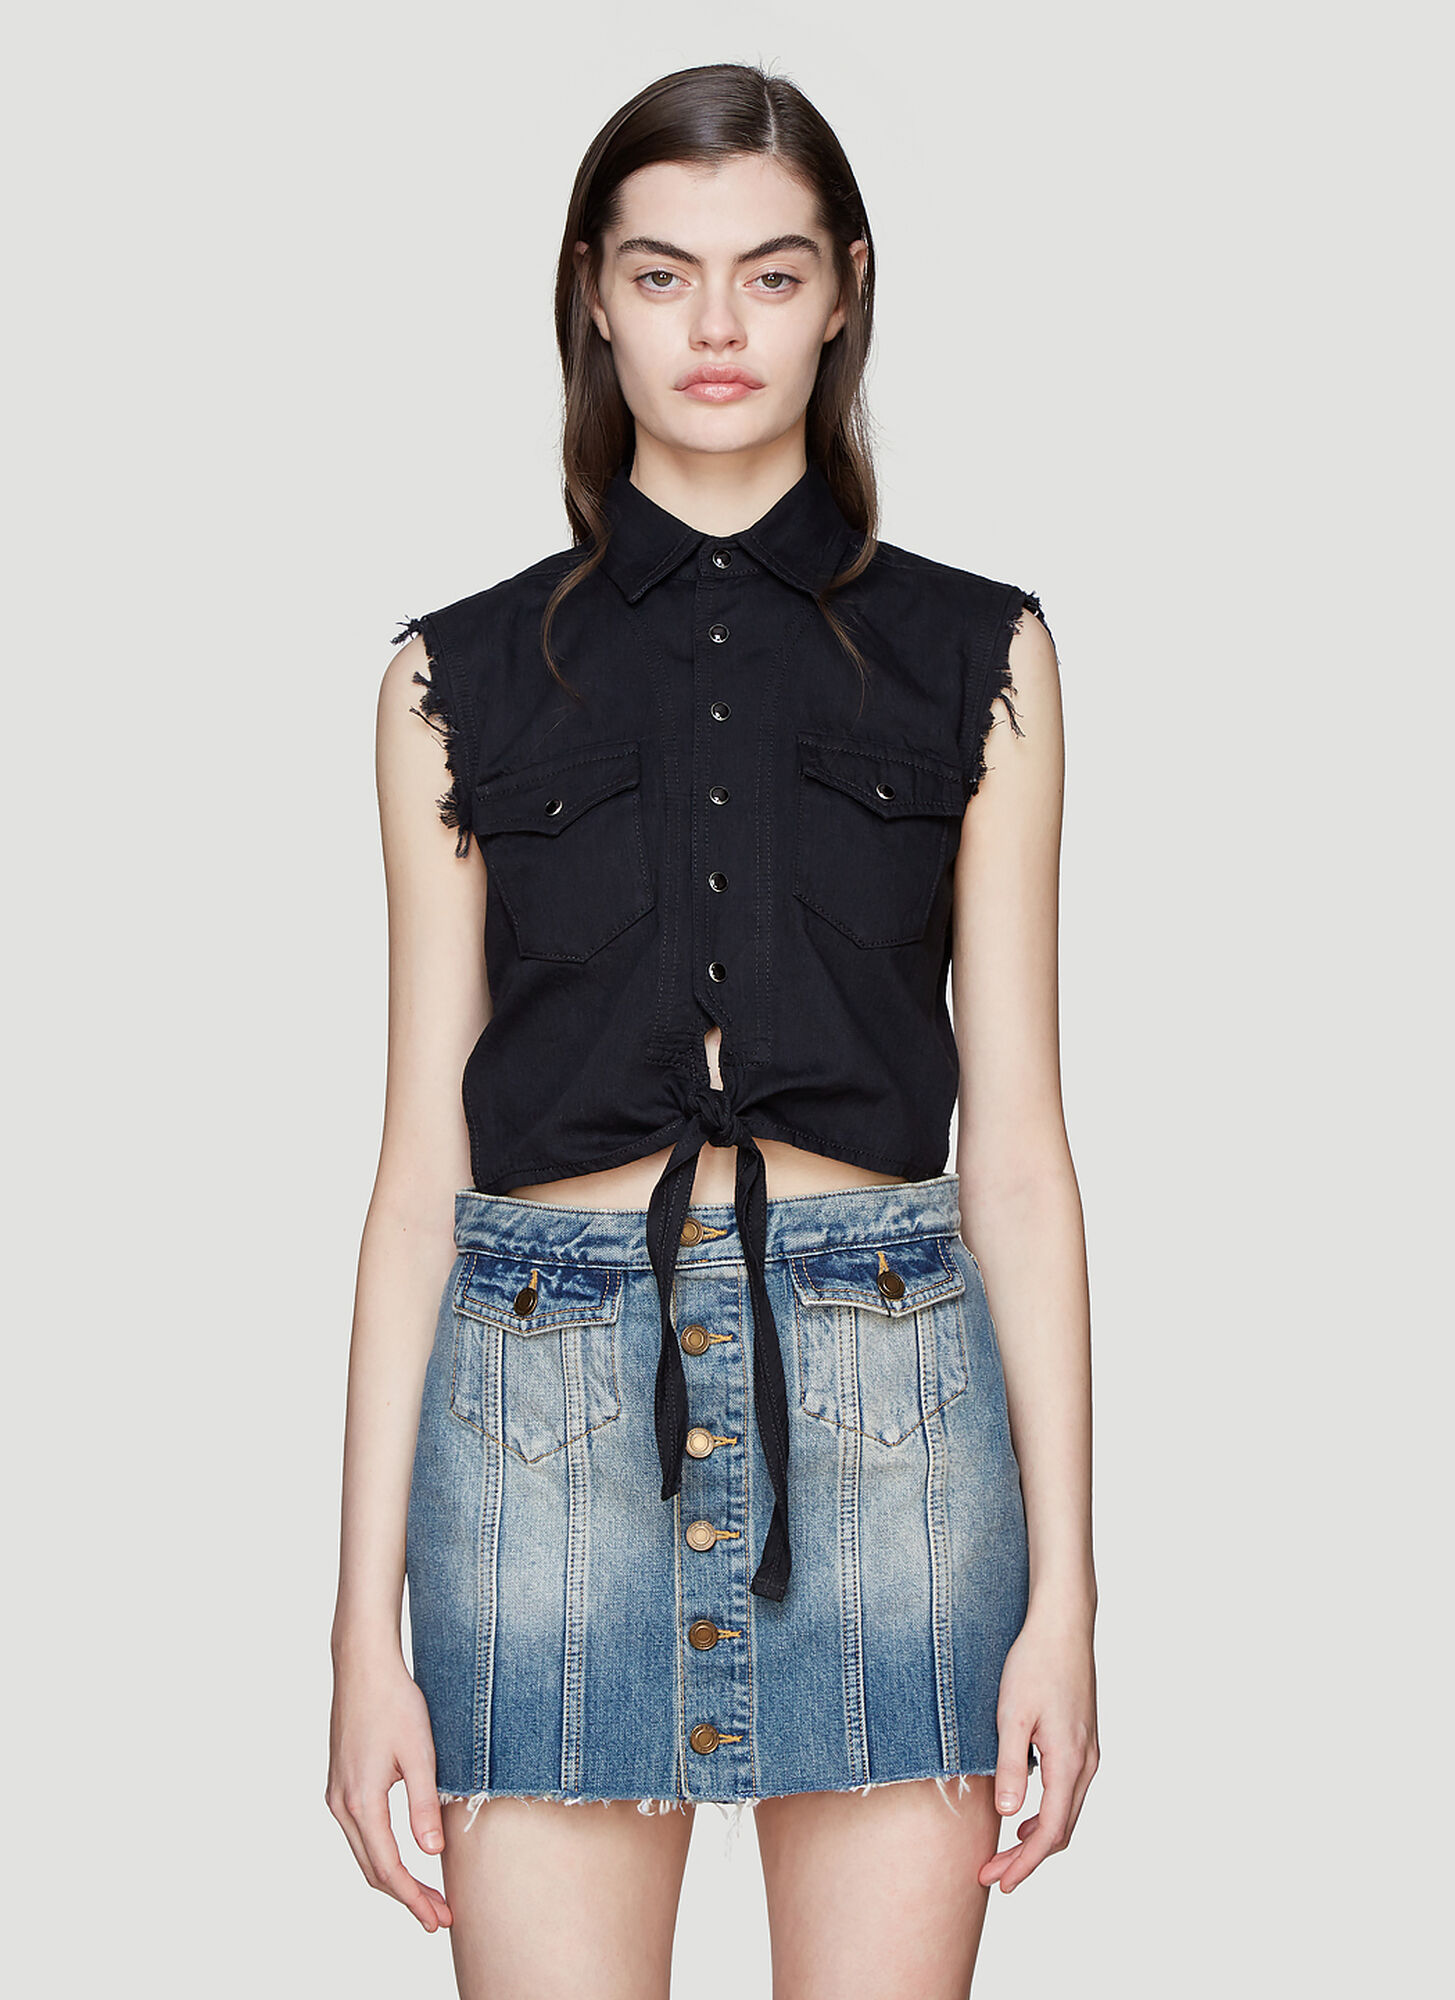 Photo of Saint Laurent Sleeveless Western Denim Shirt in Black - Saint Laurent Tops